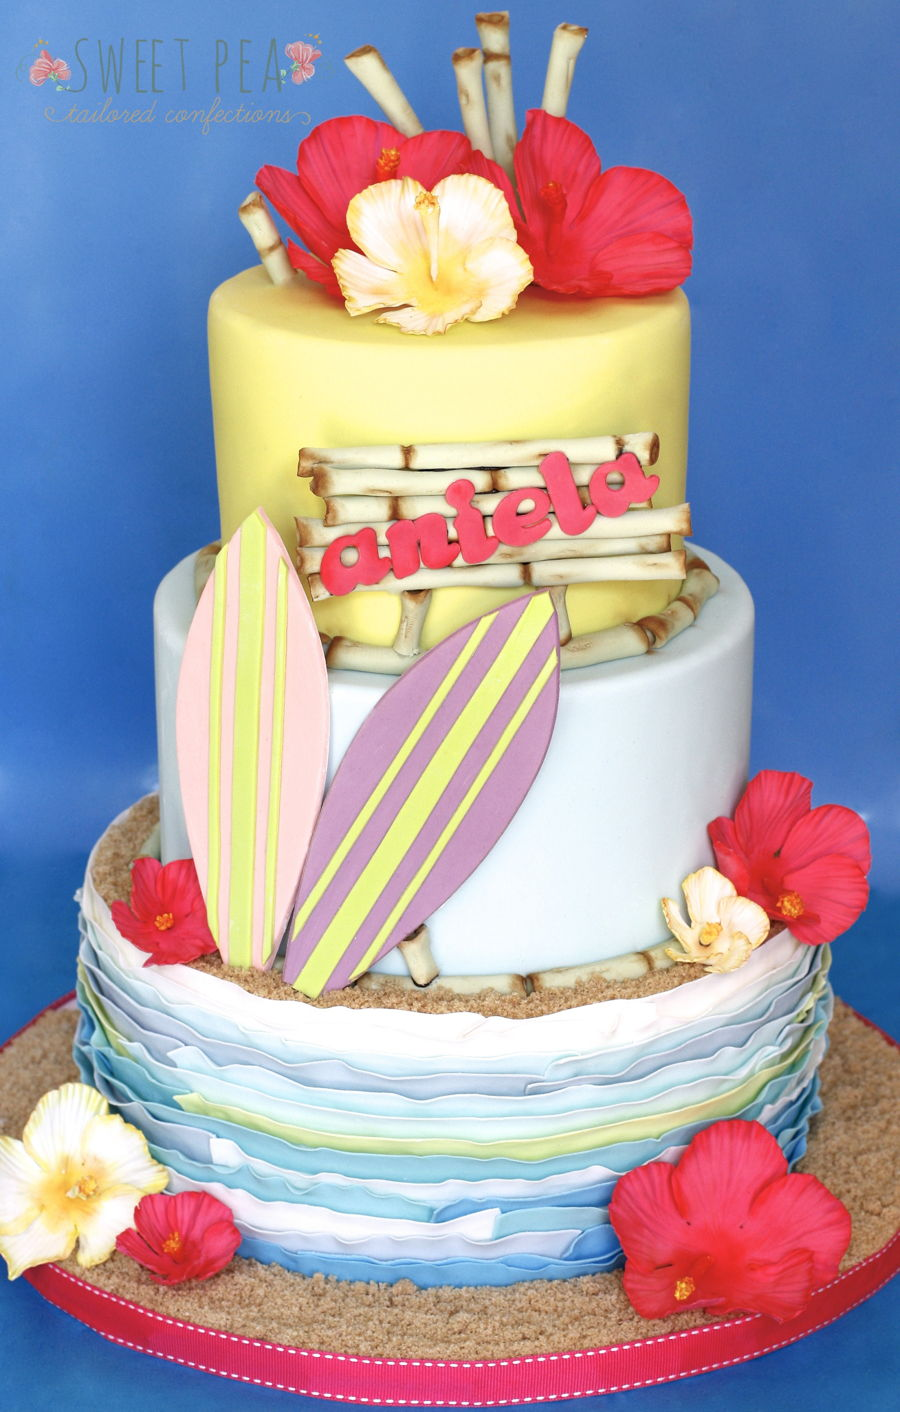 Surf's Up! on Cake Central